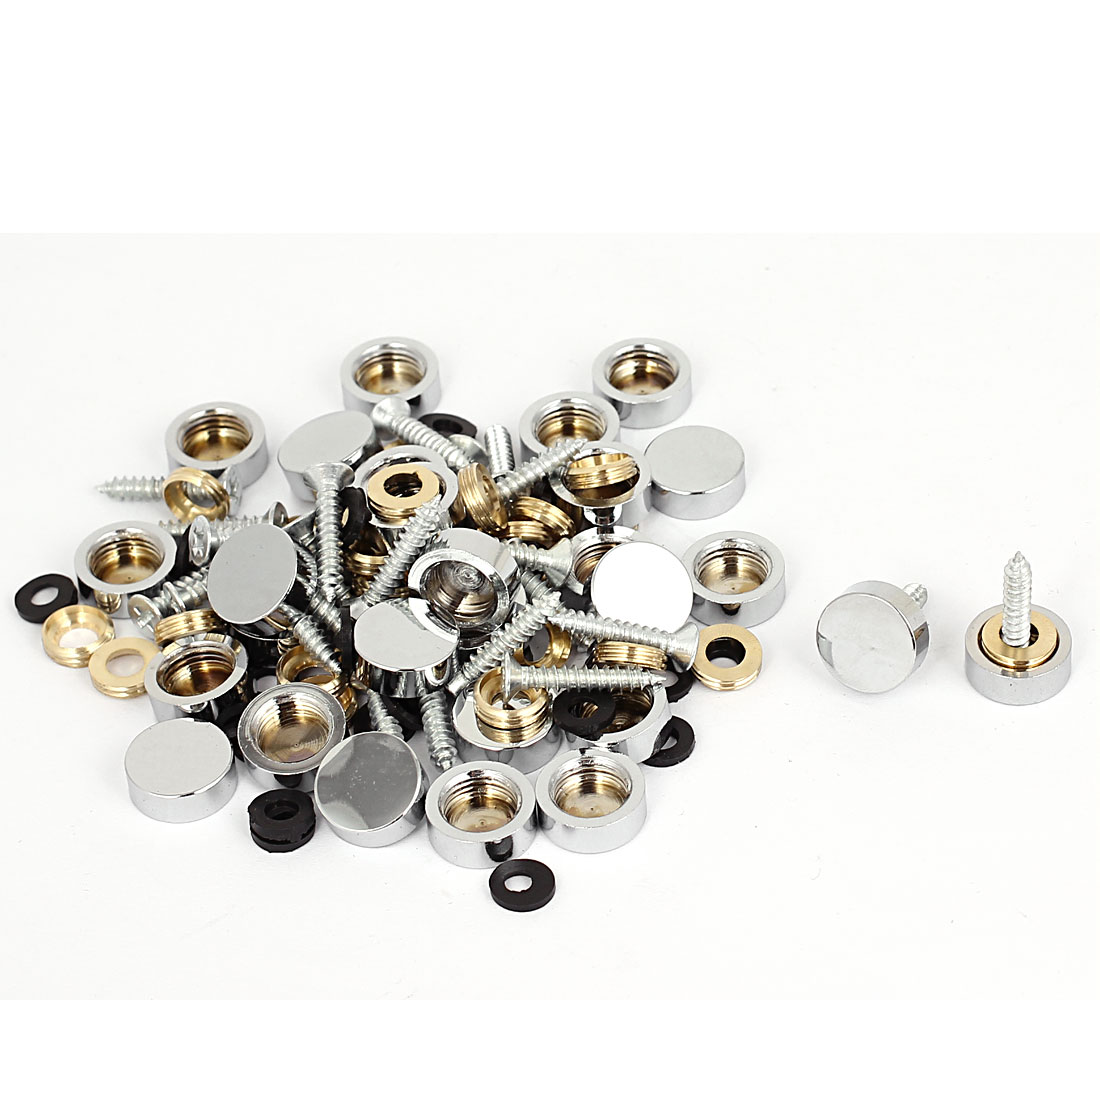 14mm Dia Advertising Glass Tea Table Decorative Metal Mirror Screw Nails 40Pcs